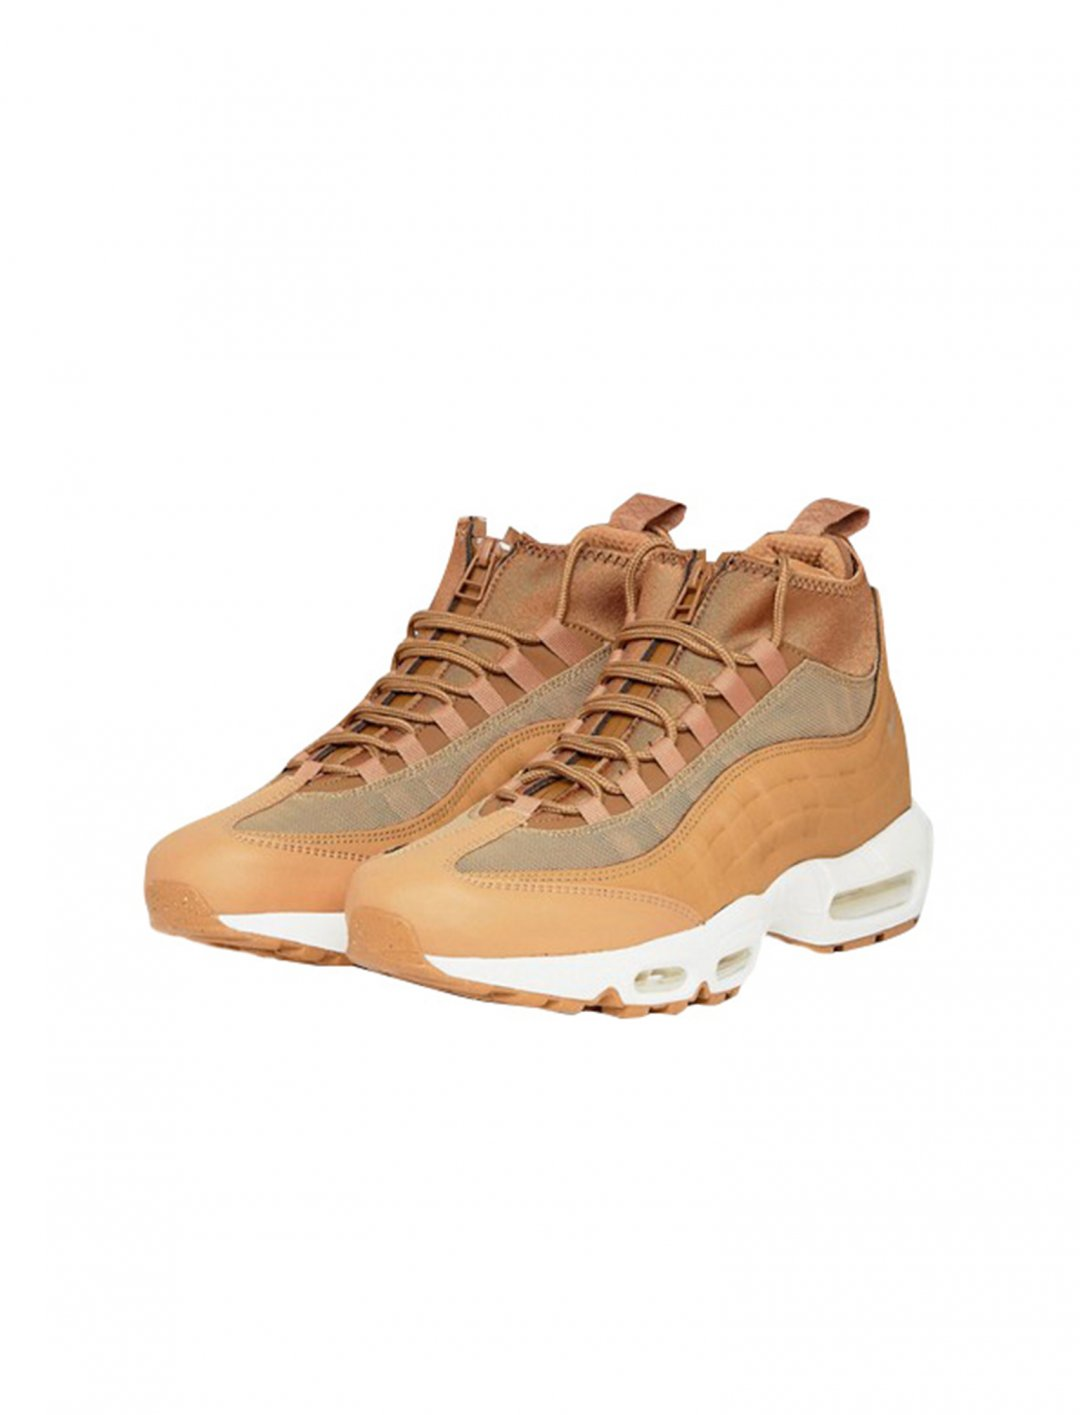 "Nike Air Max 95 Sneakerboots {""id"":12,""product_section_id"":1,""name"":""Shoes"",""order"":12} Nike"